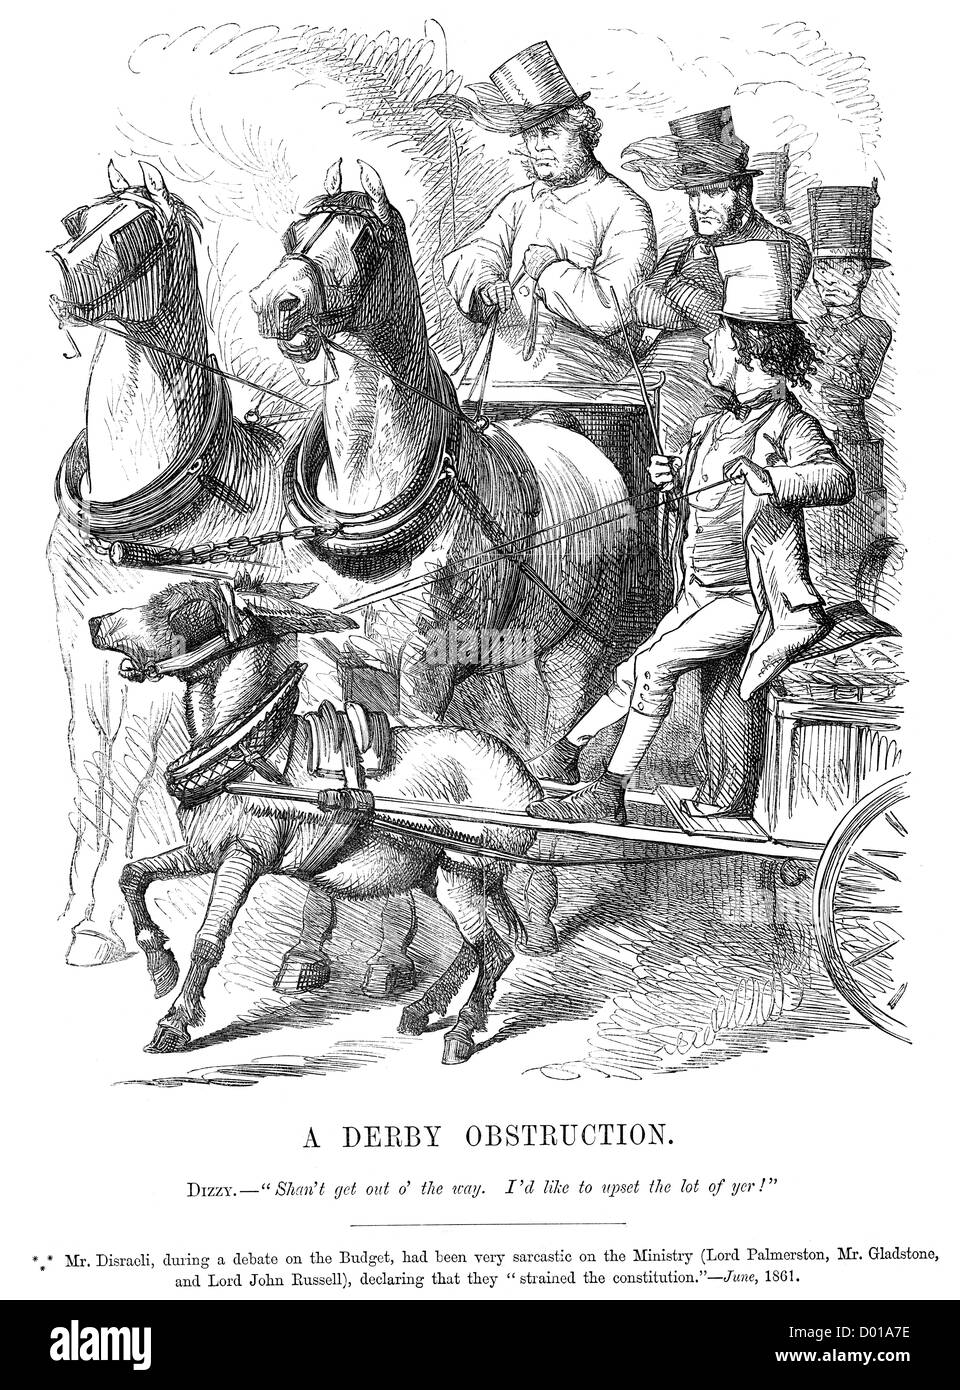 Derby Obstruction. Political cartoon about Disraeli attacking the ministry of Palmerston, Gladstone and Lord John - Stock Image